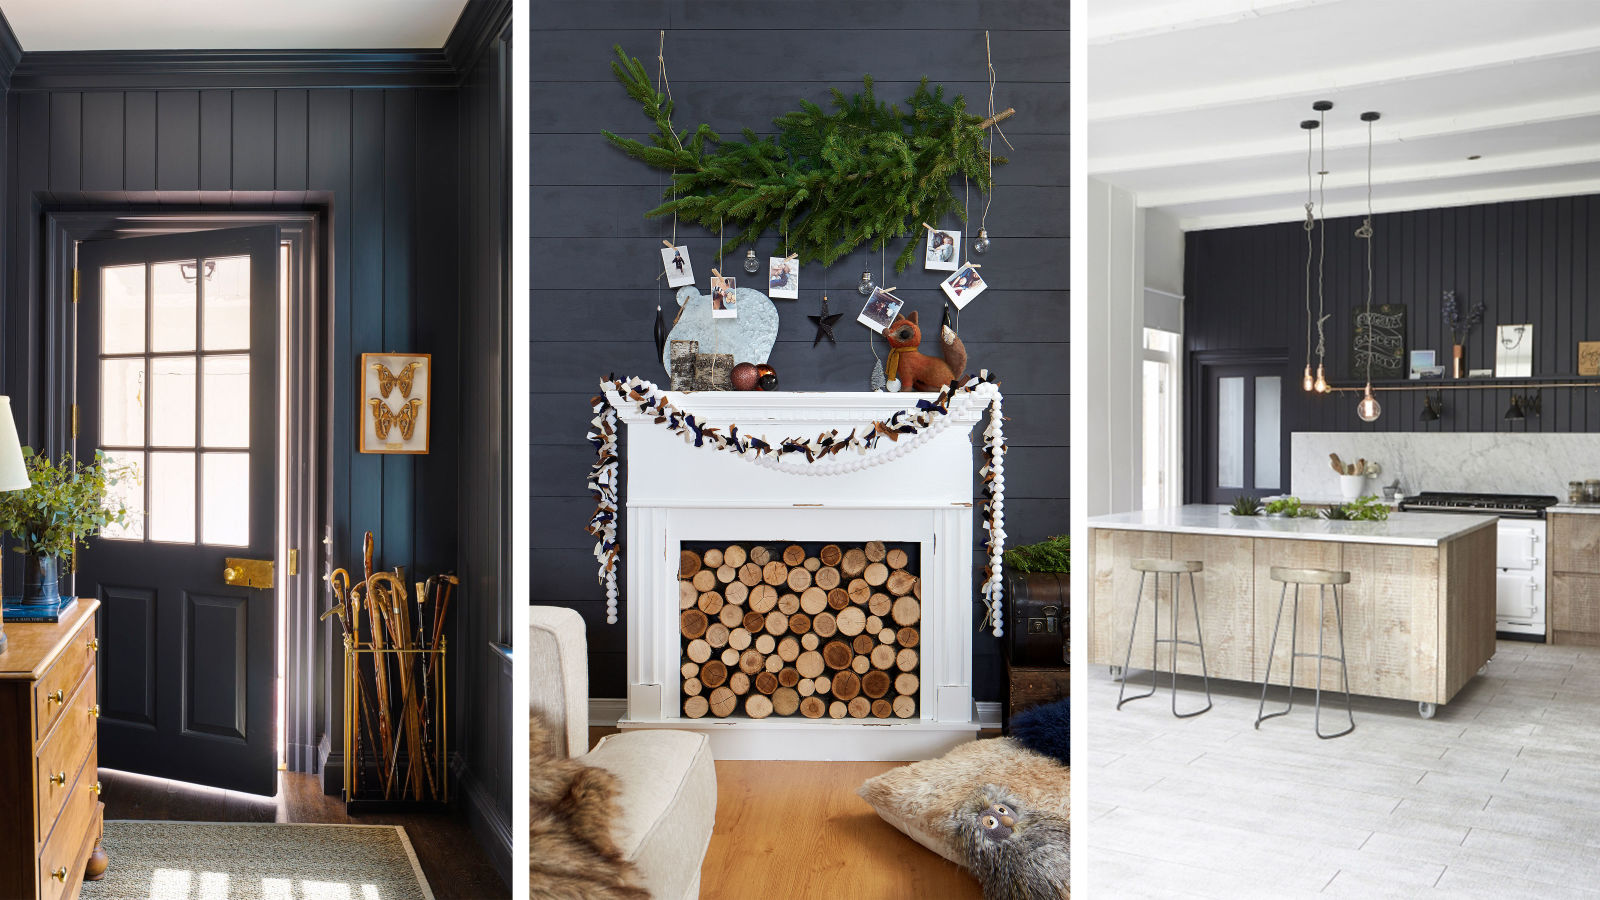 15 black shiplap ideas - how to style the black shiplap trend